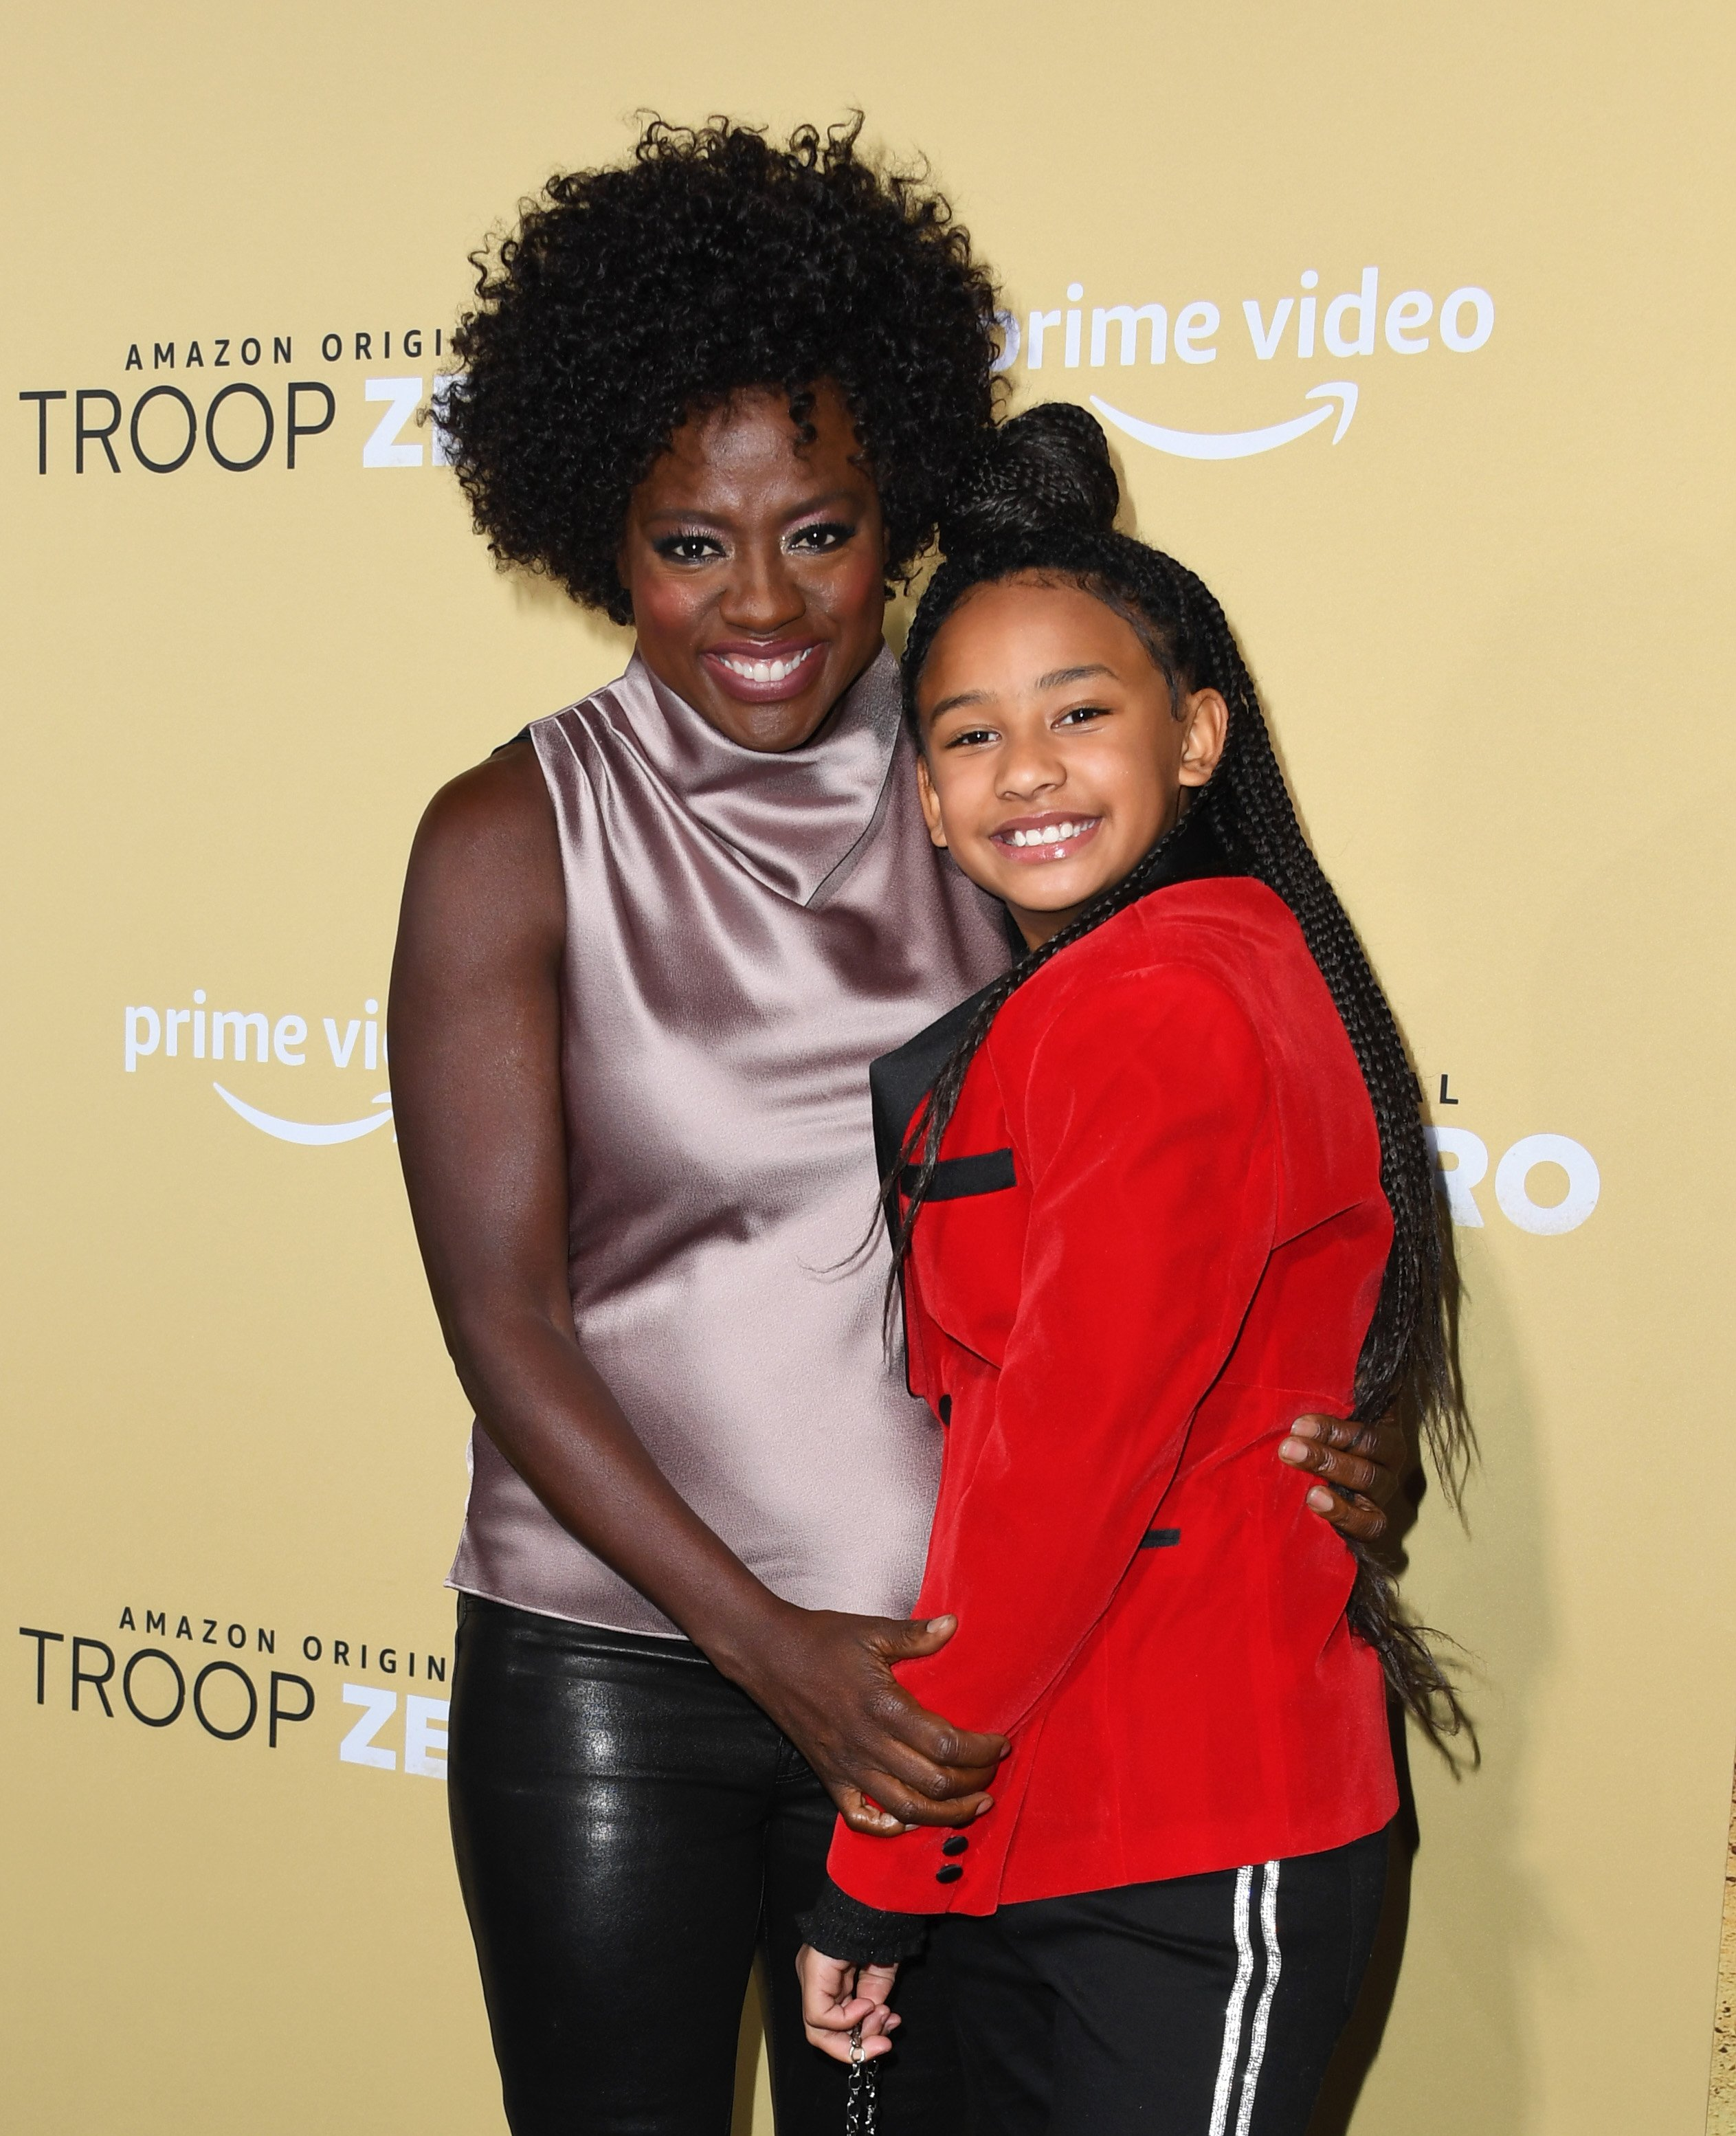 """Viola Davis and daughter Genesis attends the premiere of """"Troop Zero"""" in Los Angeles, California on January 13, 2020 